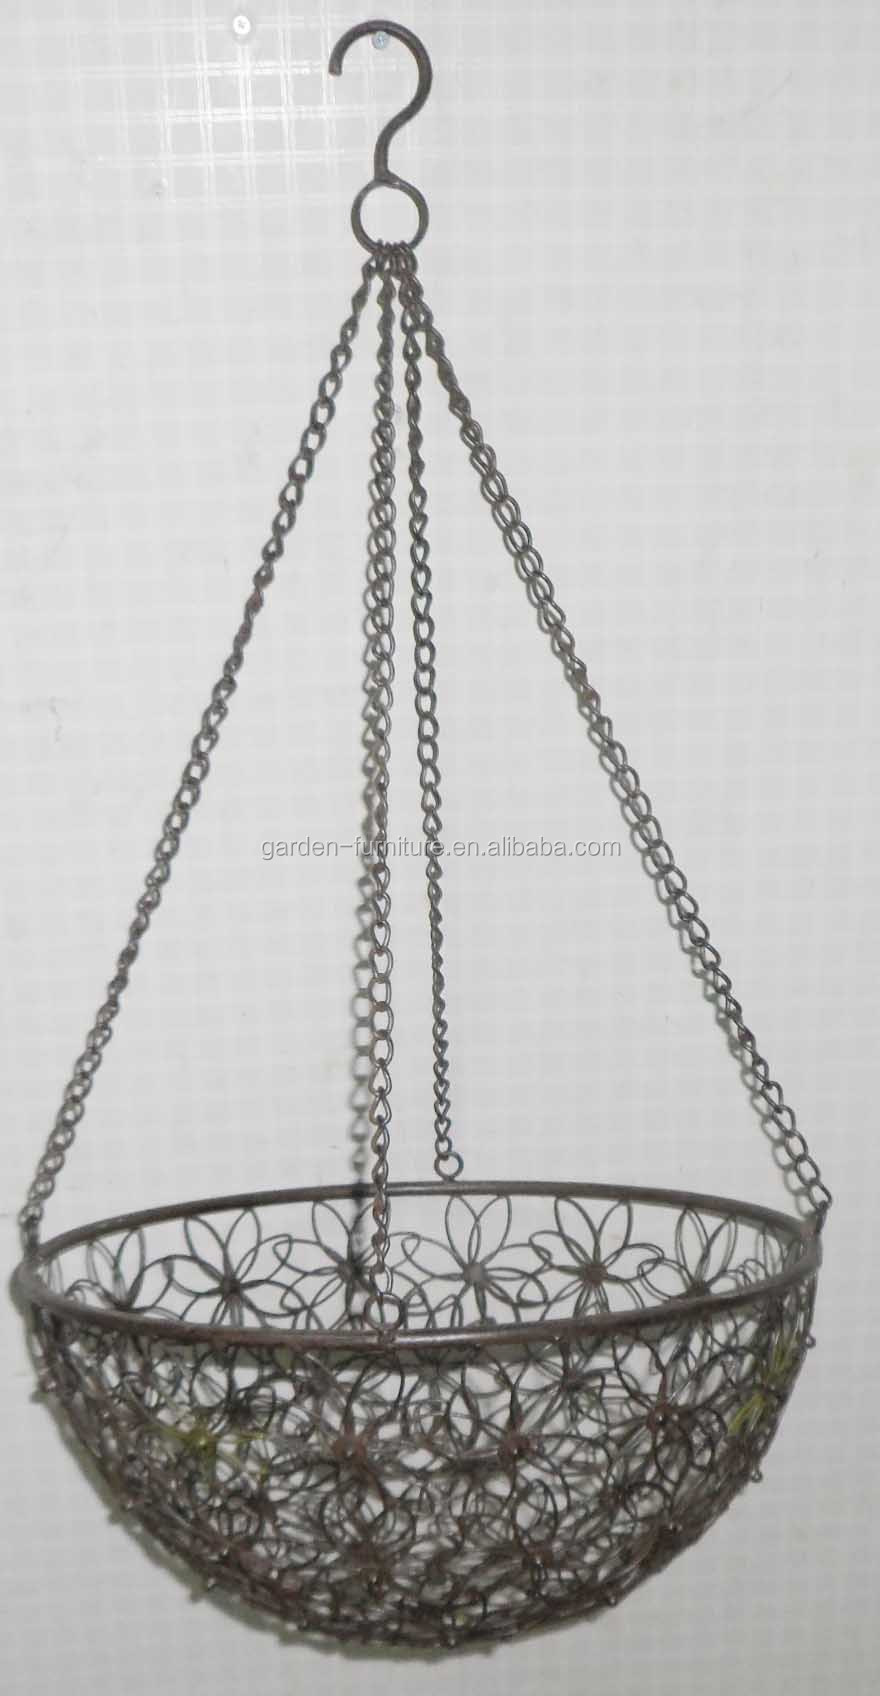 Handicraft Decorative Metal Planter Fruit Bowl Wrought